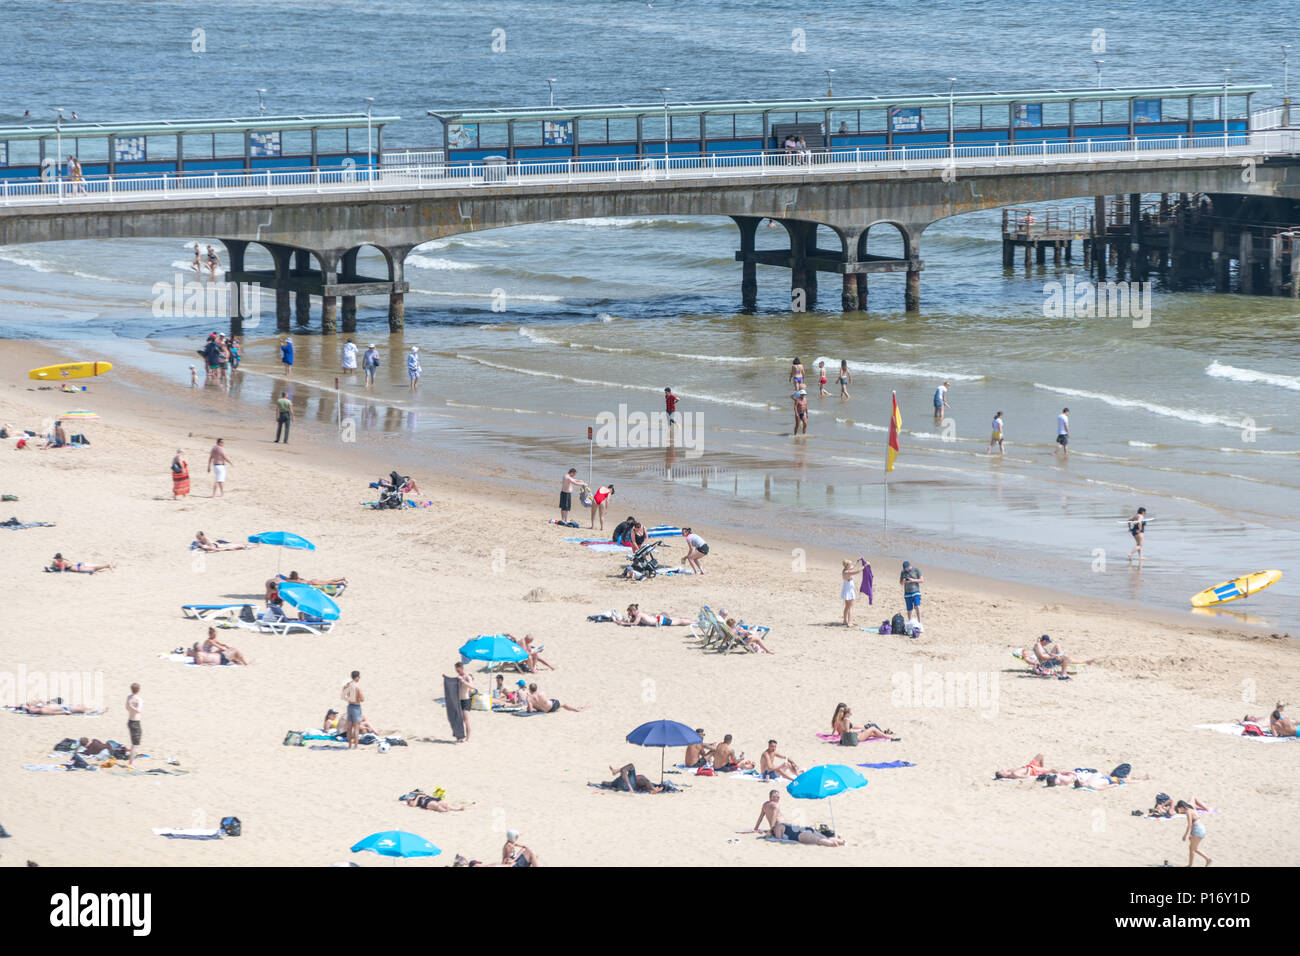 Bournemouth, UK. 11th June 2018. Tourists enjoy the hot and sunny weather on Bournemouth beach and seafront. Credit: Thomas Faull/Alamy Live News Stock Photo